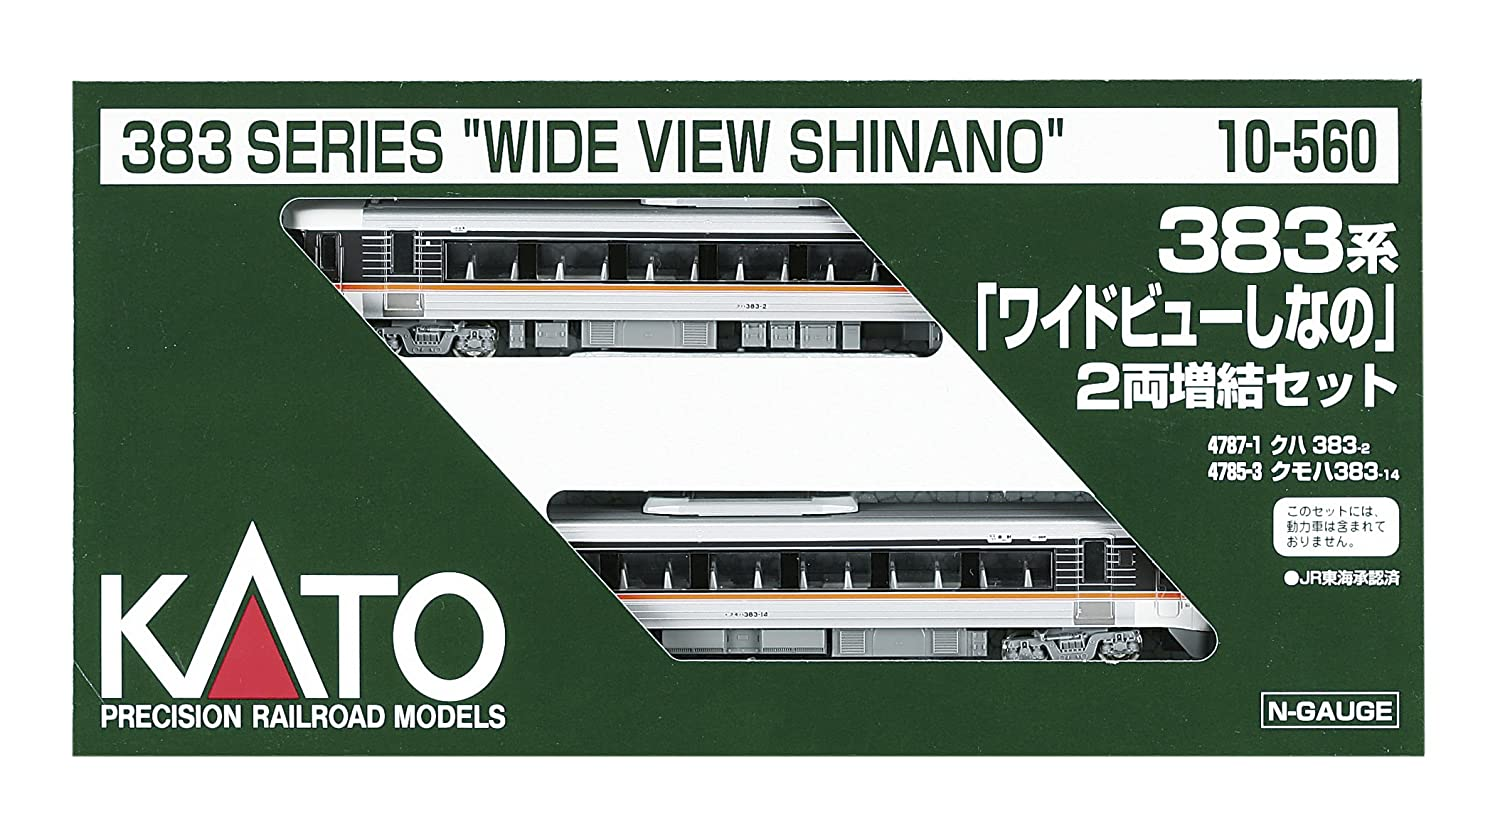 Kato 10-560 Series 383 Wide View Shinano 2-Car Set Add-On by